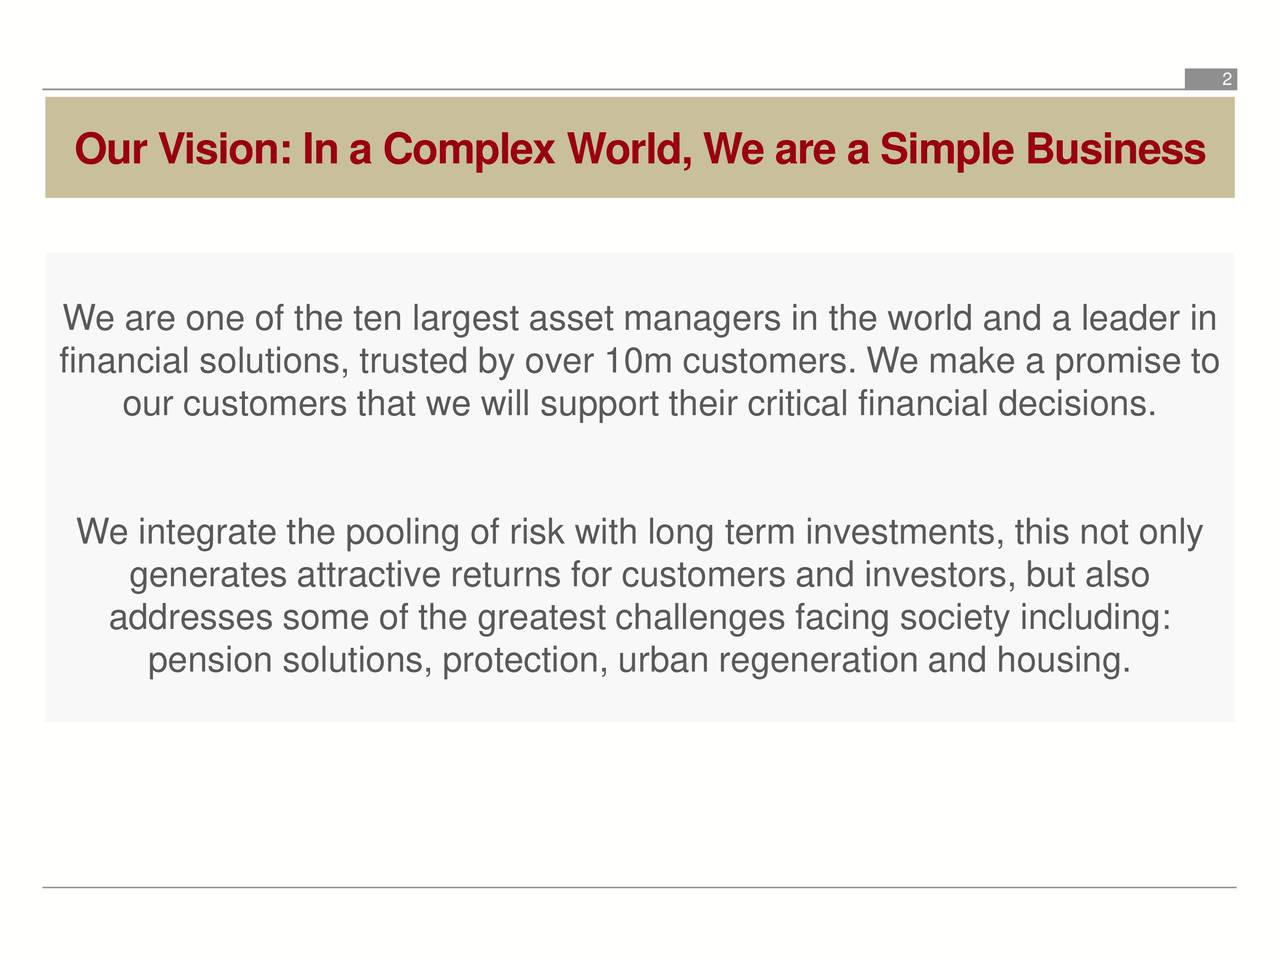 Our Vision: In a Complex World, We are a Simple Business We are one of the ten largest asset managers in the world and a leader in financial solutions, trusted by over 10m customers. We make a promise to our customers that we will support their critical financial decisions. We integrate the pooling of risk with long term investments, this not only generates attractive returns for customers and investors, but also addresses some of the greatest challenges facing society including: pension solutions, protection, urban regeneration and housing.